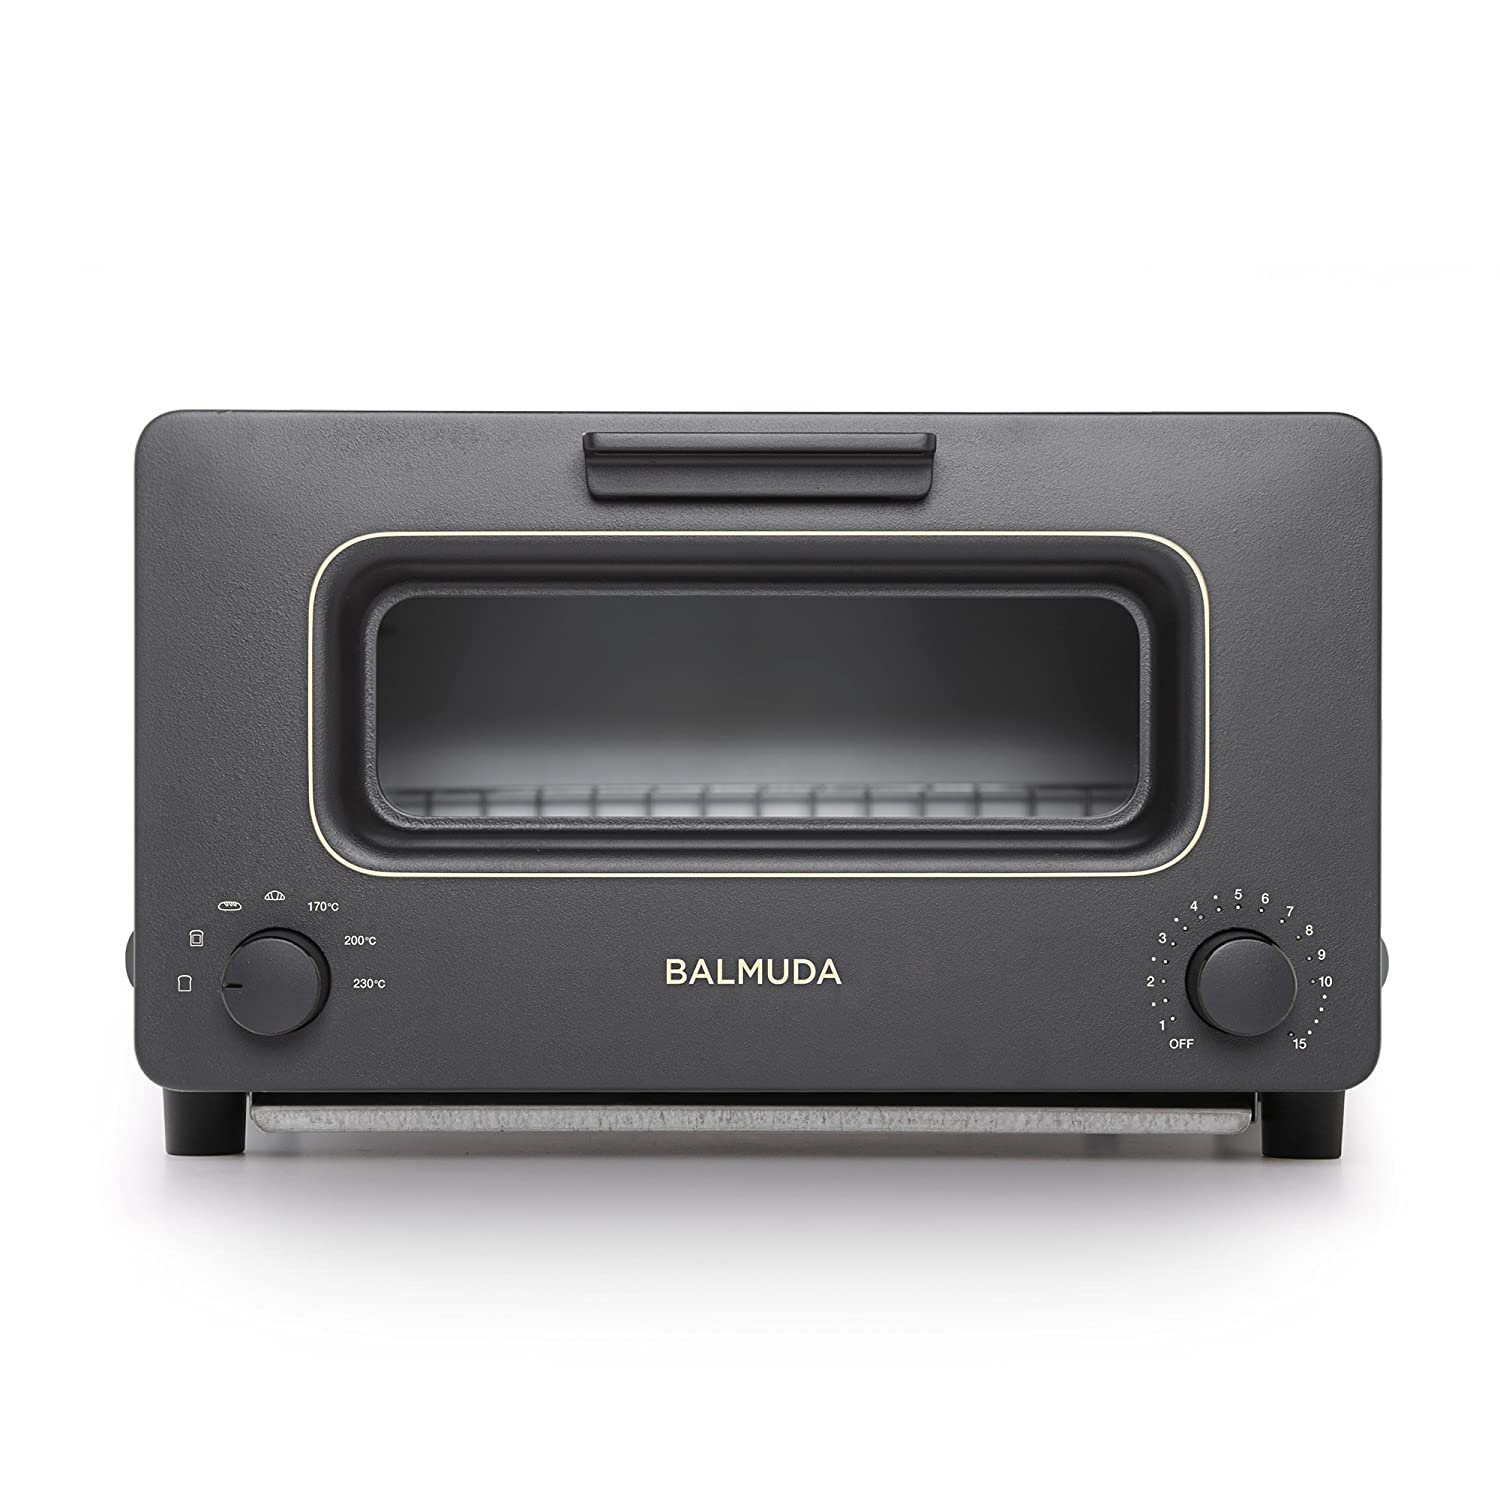 BALMUDA The Toaster K01E-KG